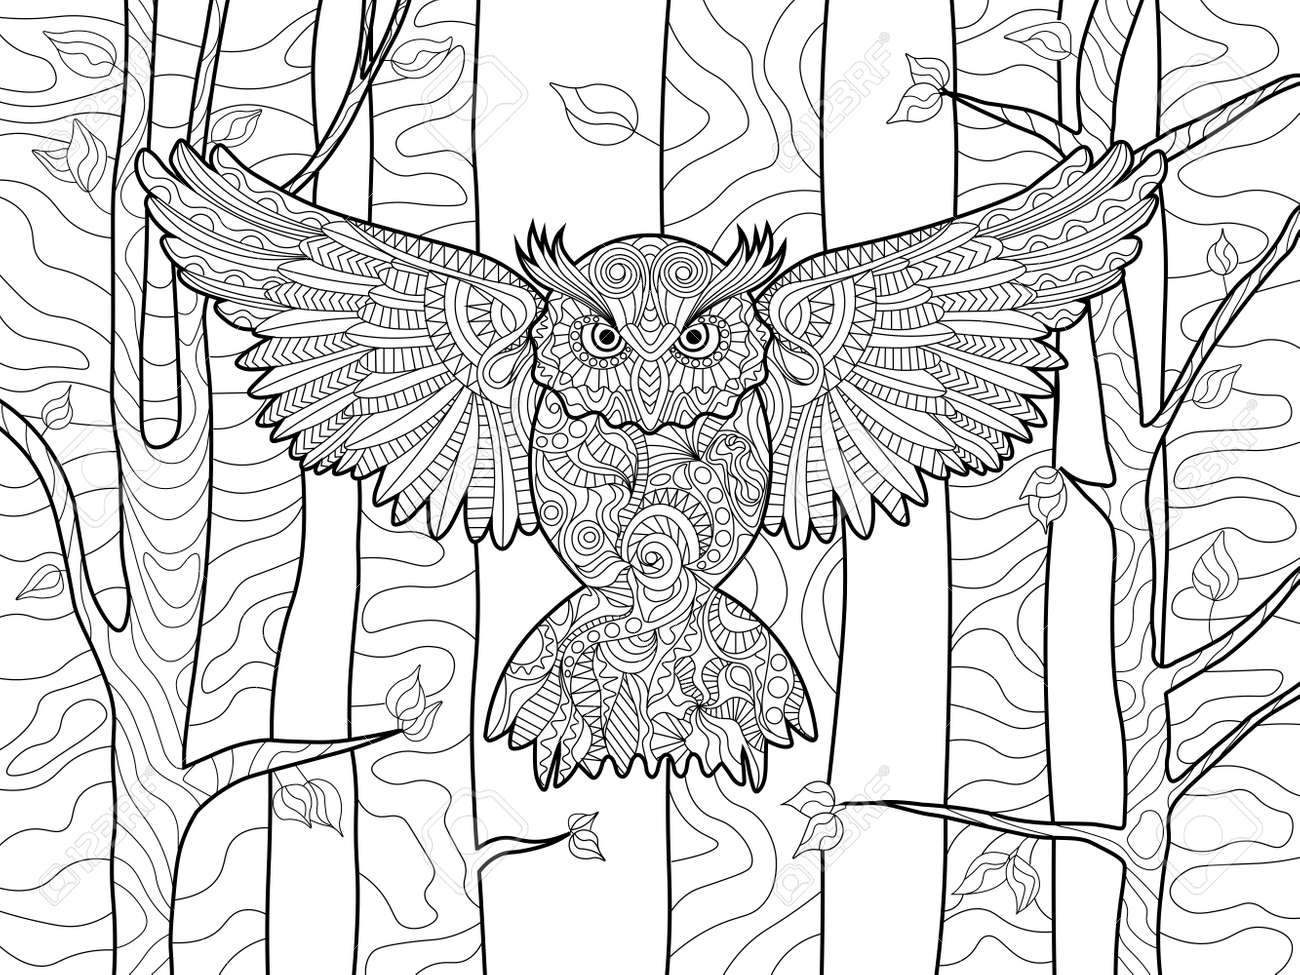 Coloring adults stress - Owl In The Forest Bird Coloring Book For Adults Vector Illustration Anti Stress Coloring